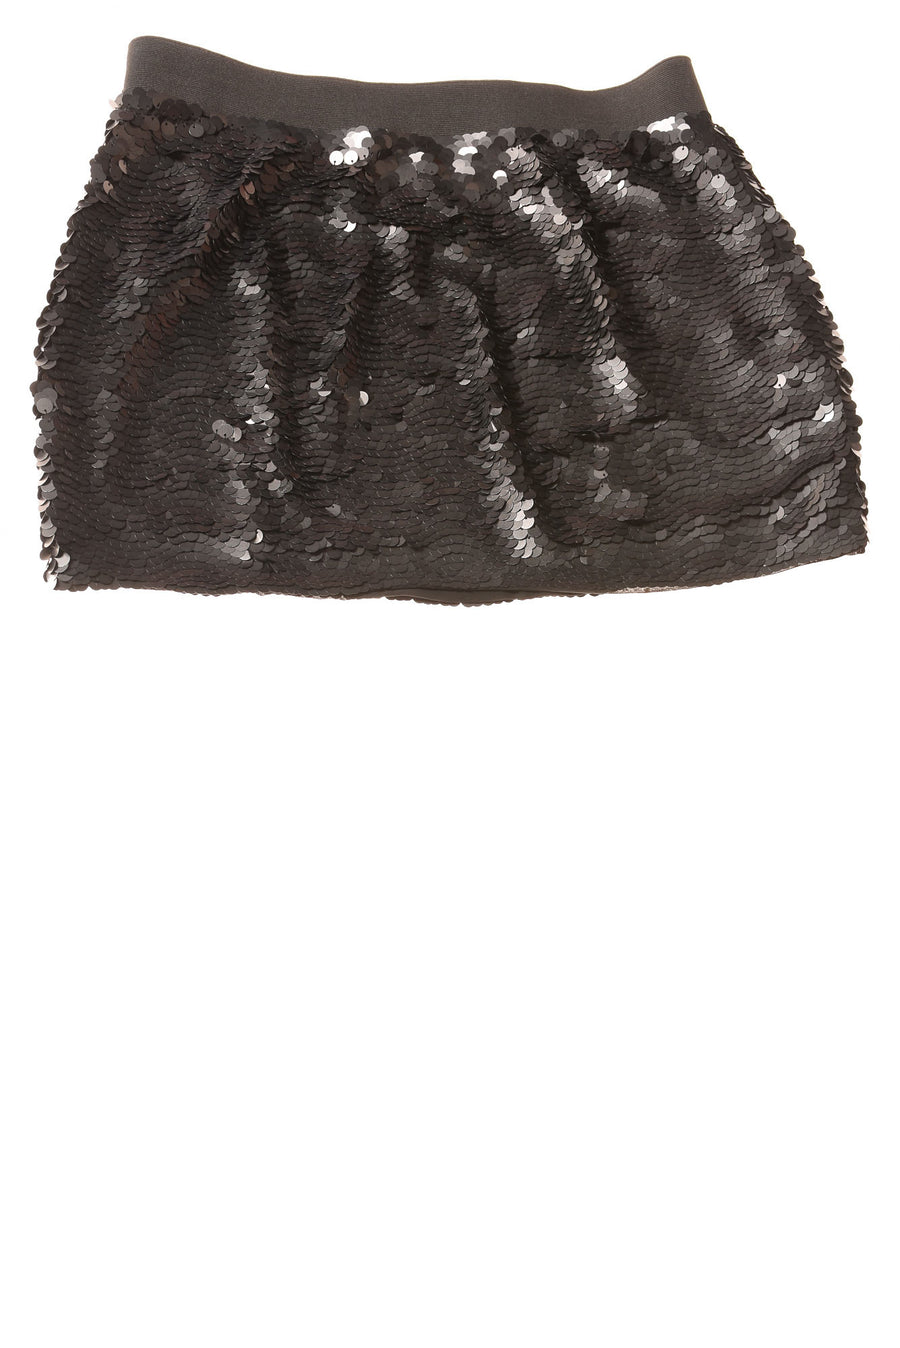 USED BCBG Maxazria Women's Skirt Small Black